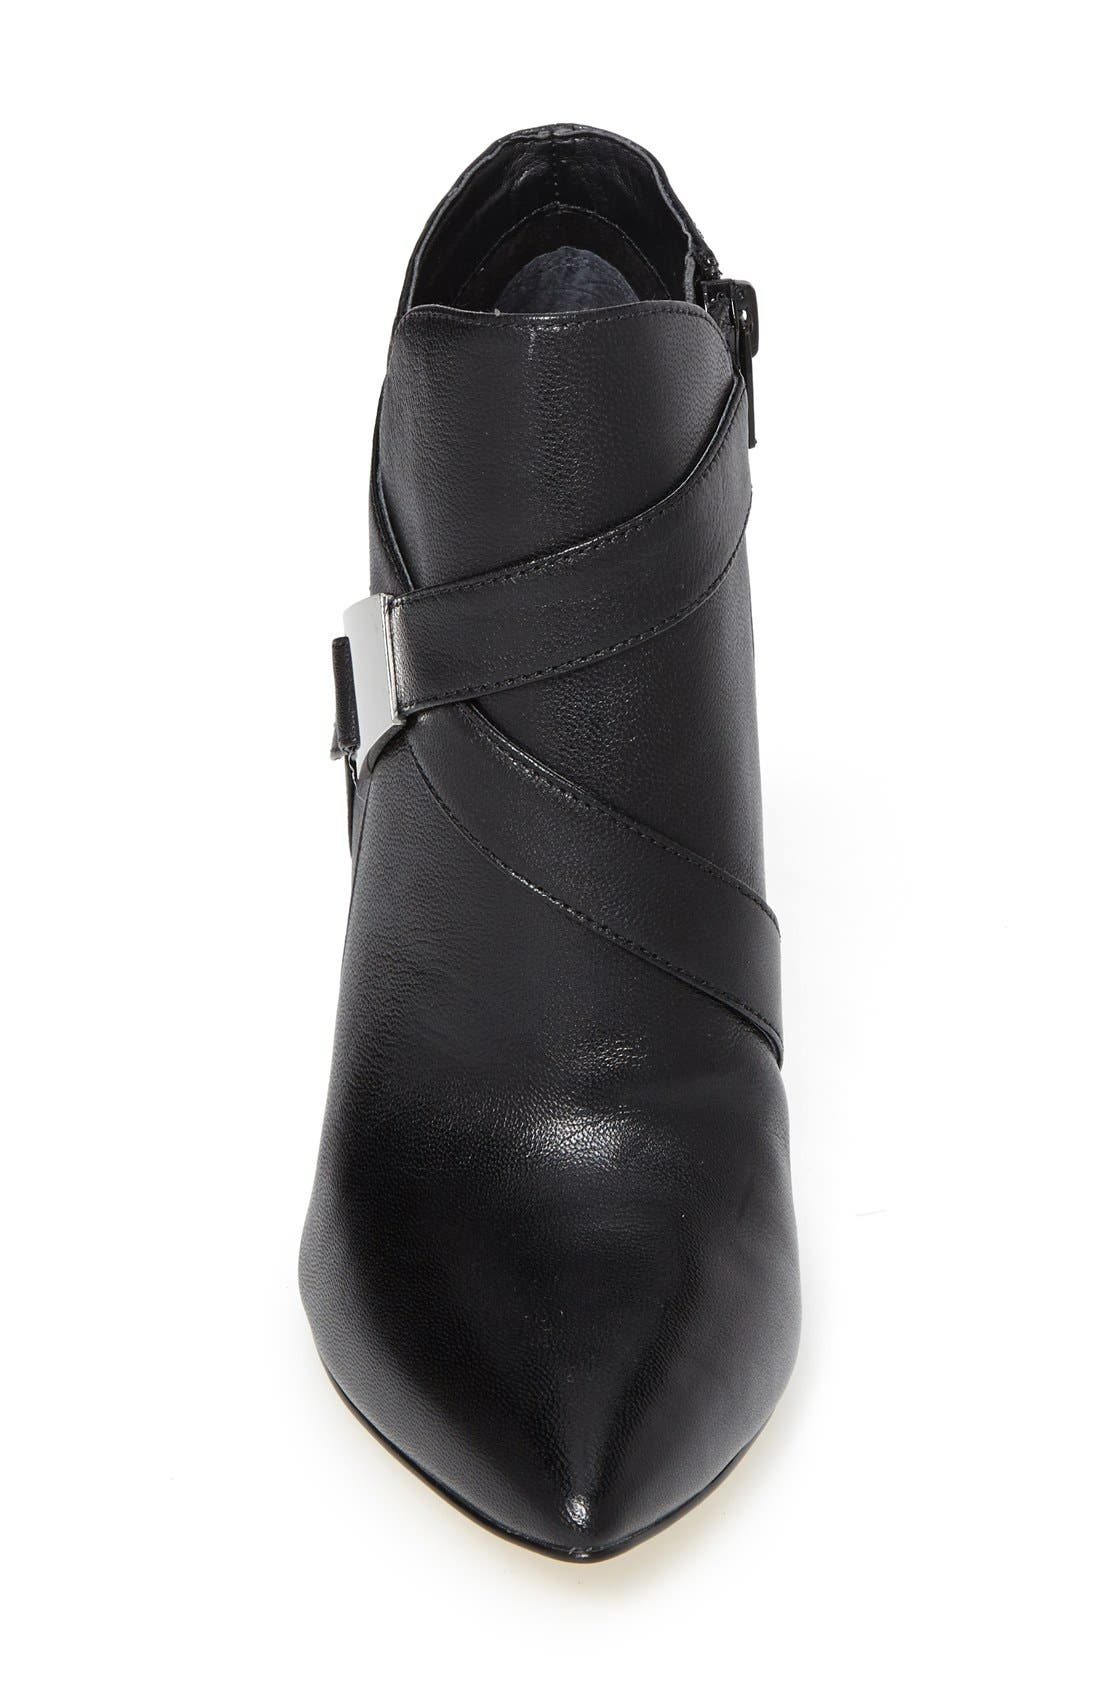 Alternate Image 3  - GUESS 'Valari' Leather Pointy Toe Bootie (Women)